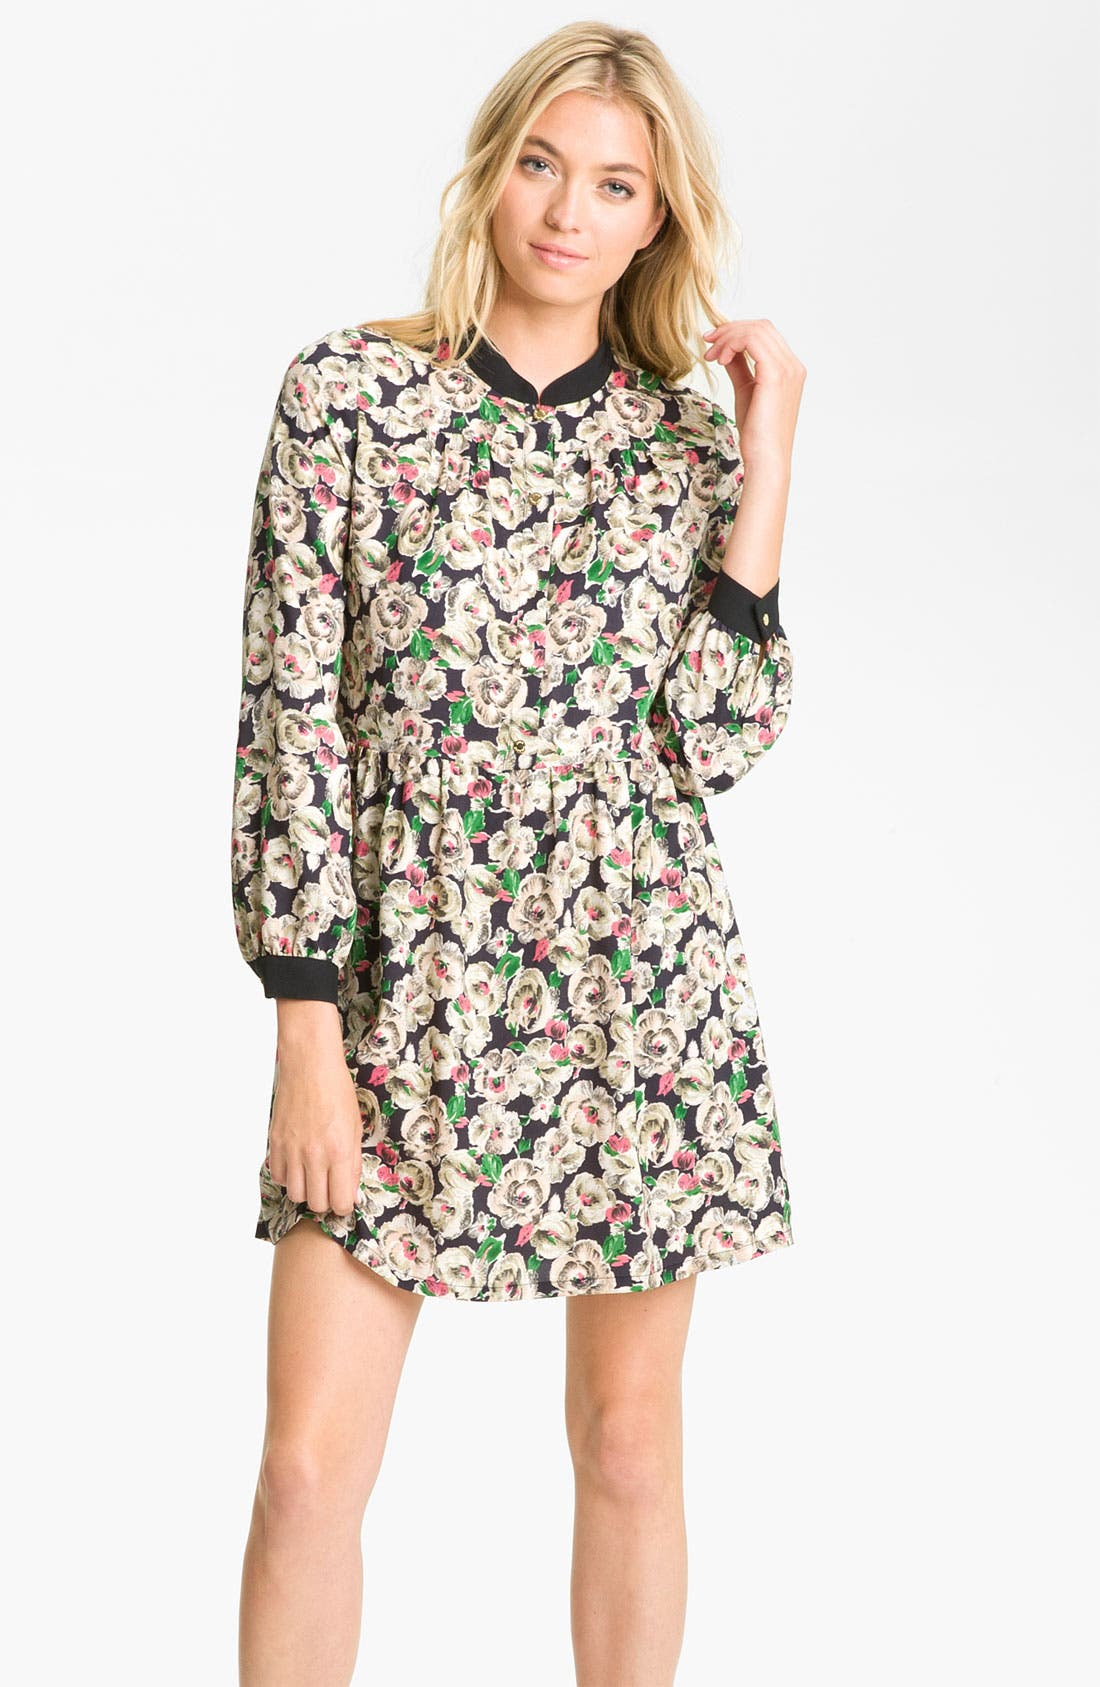 Main Image - Juicy Couture Floral Print Dress